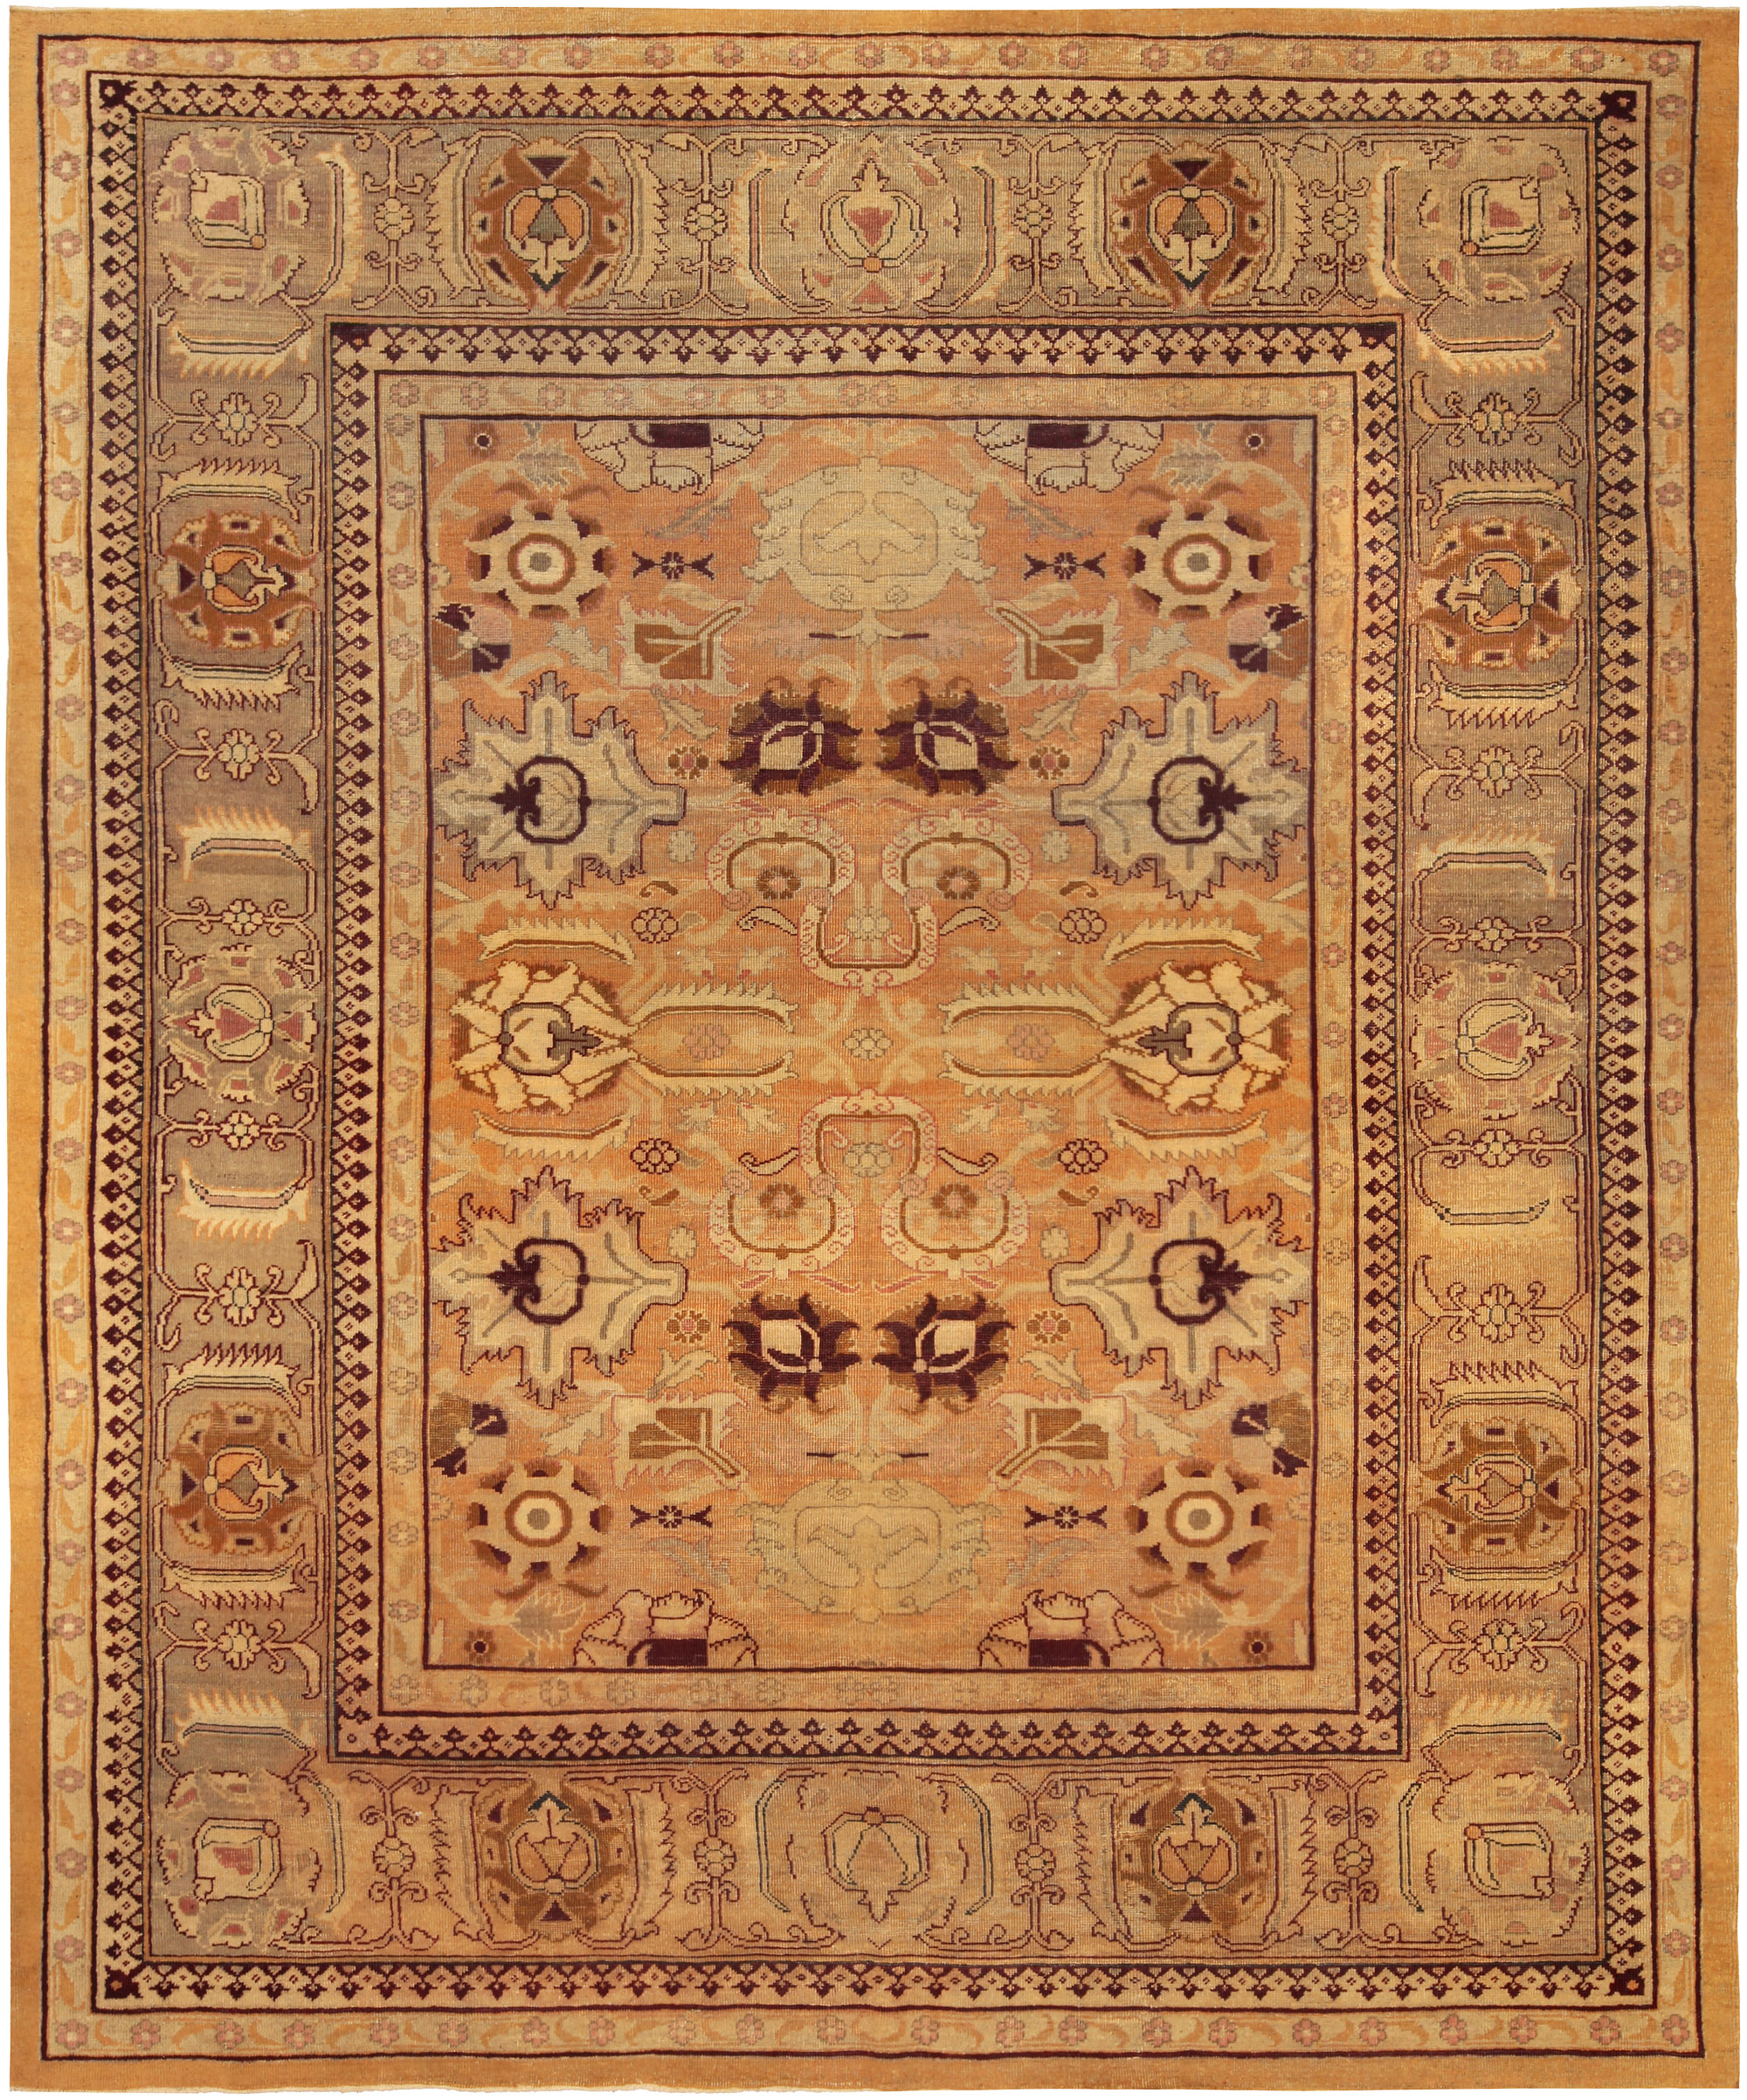 Antique Indian Rugs: Antique Indian Amritsar Rug BB5191 By Doris Leslie Blau